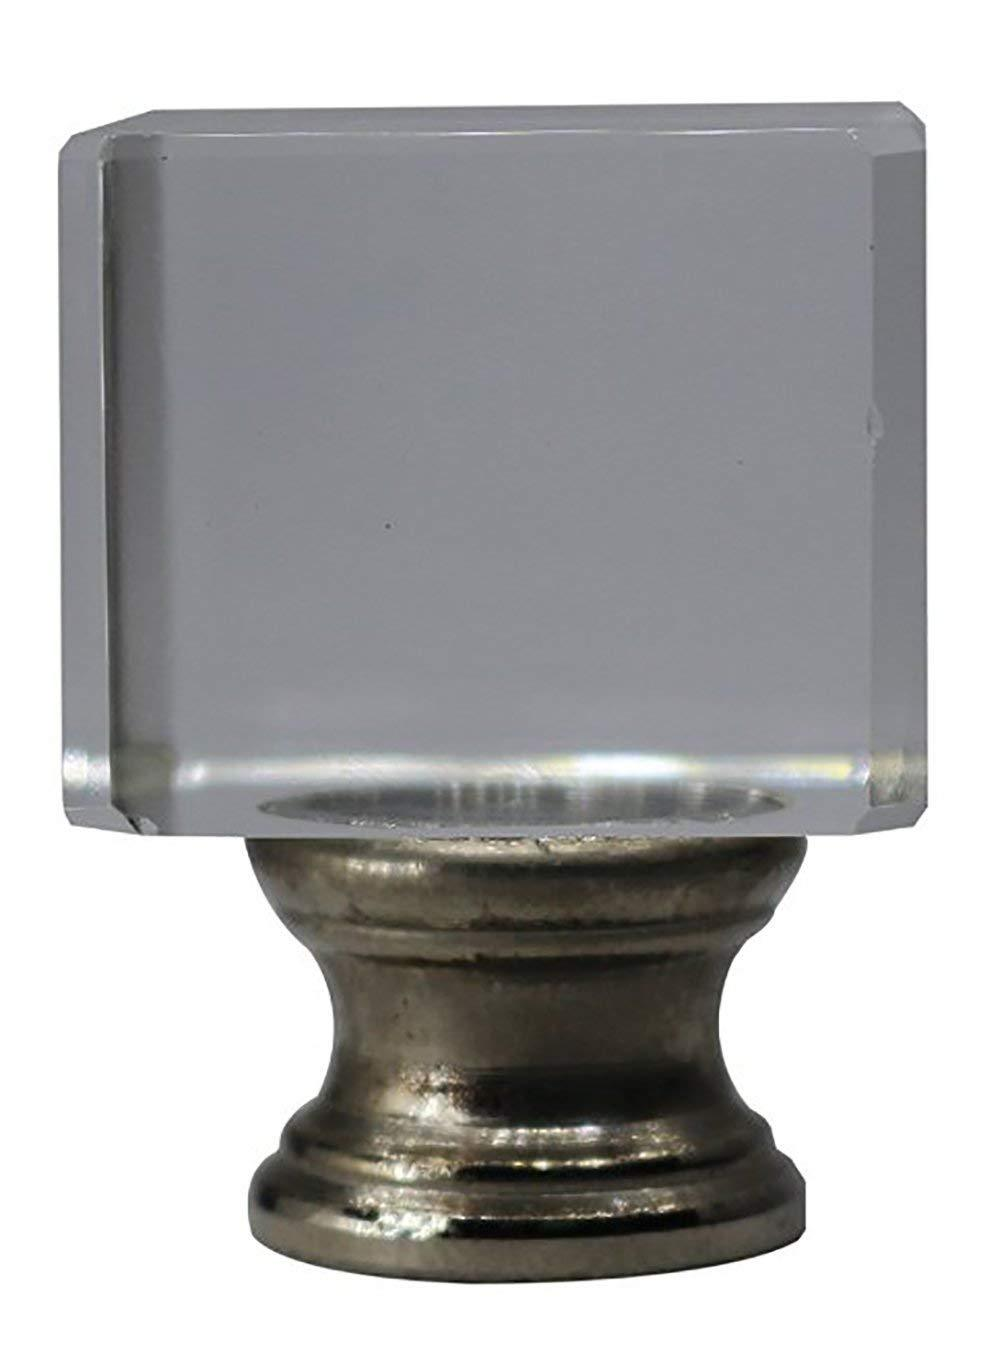 """Urbanest Crystal Glace Lamp Finial, 1 1/2"""" Tall image 2"""